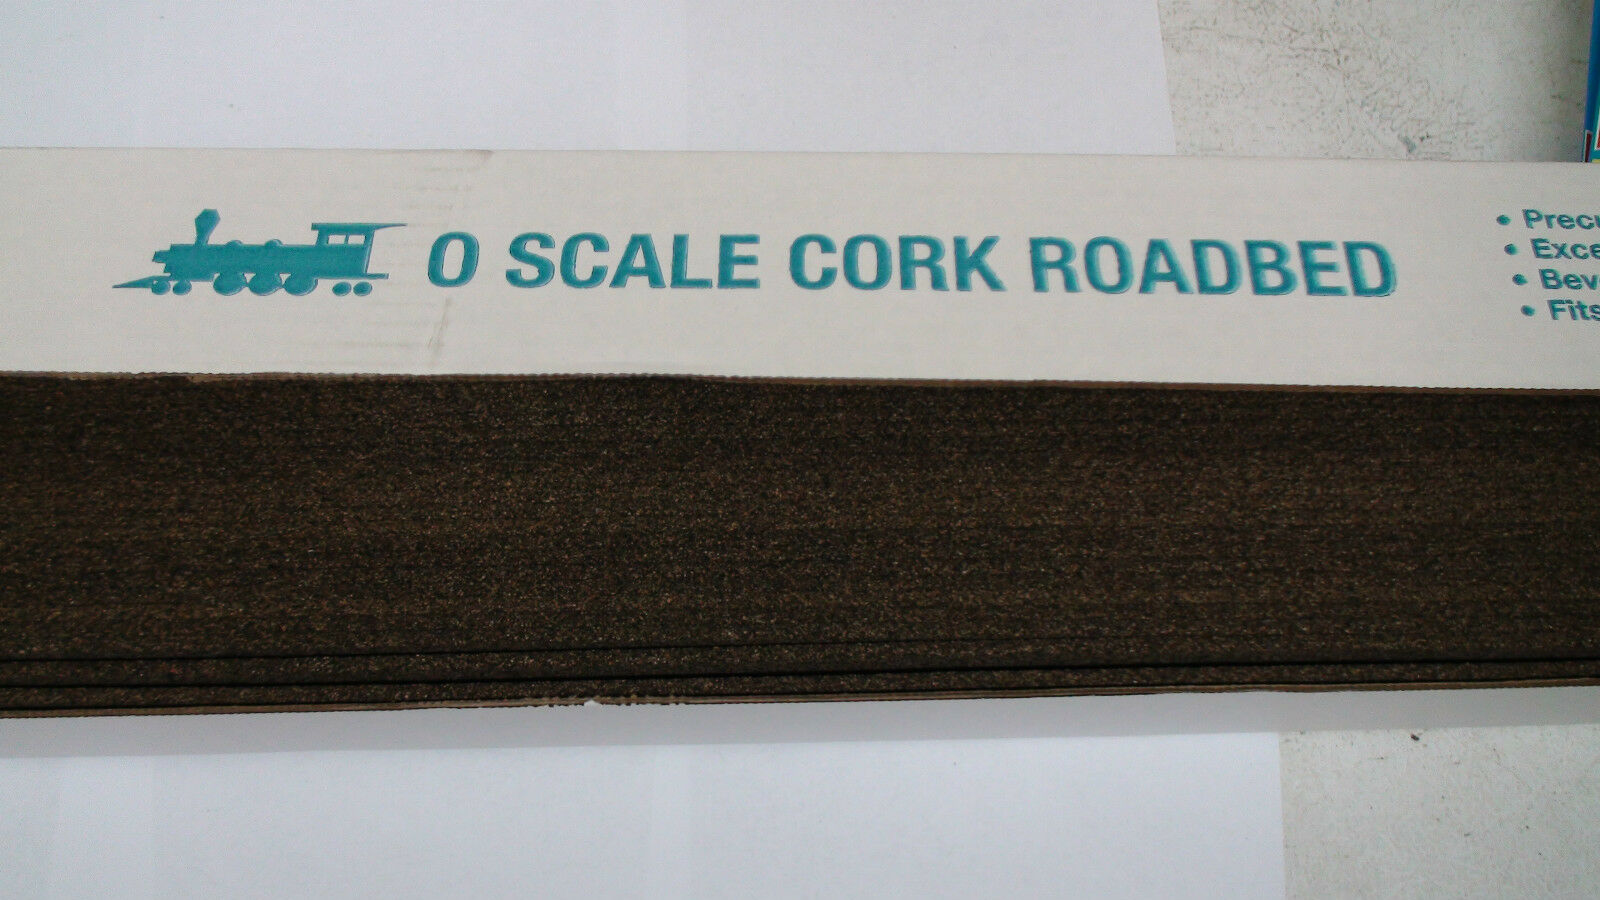 MIDWEST CORK stradaBED  3016 O SCALE 25 PIECES PIECES PIECES 36  lungo EACH PIECE TOTAL 75 FEET c70b55